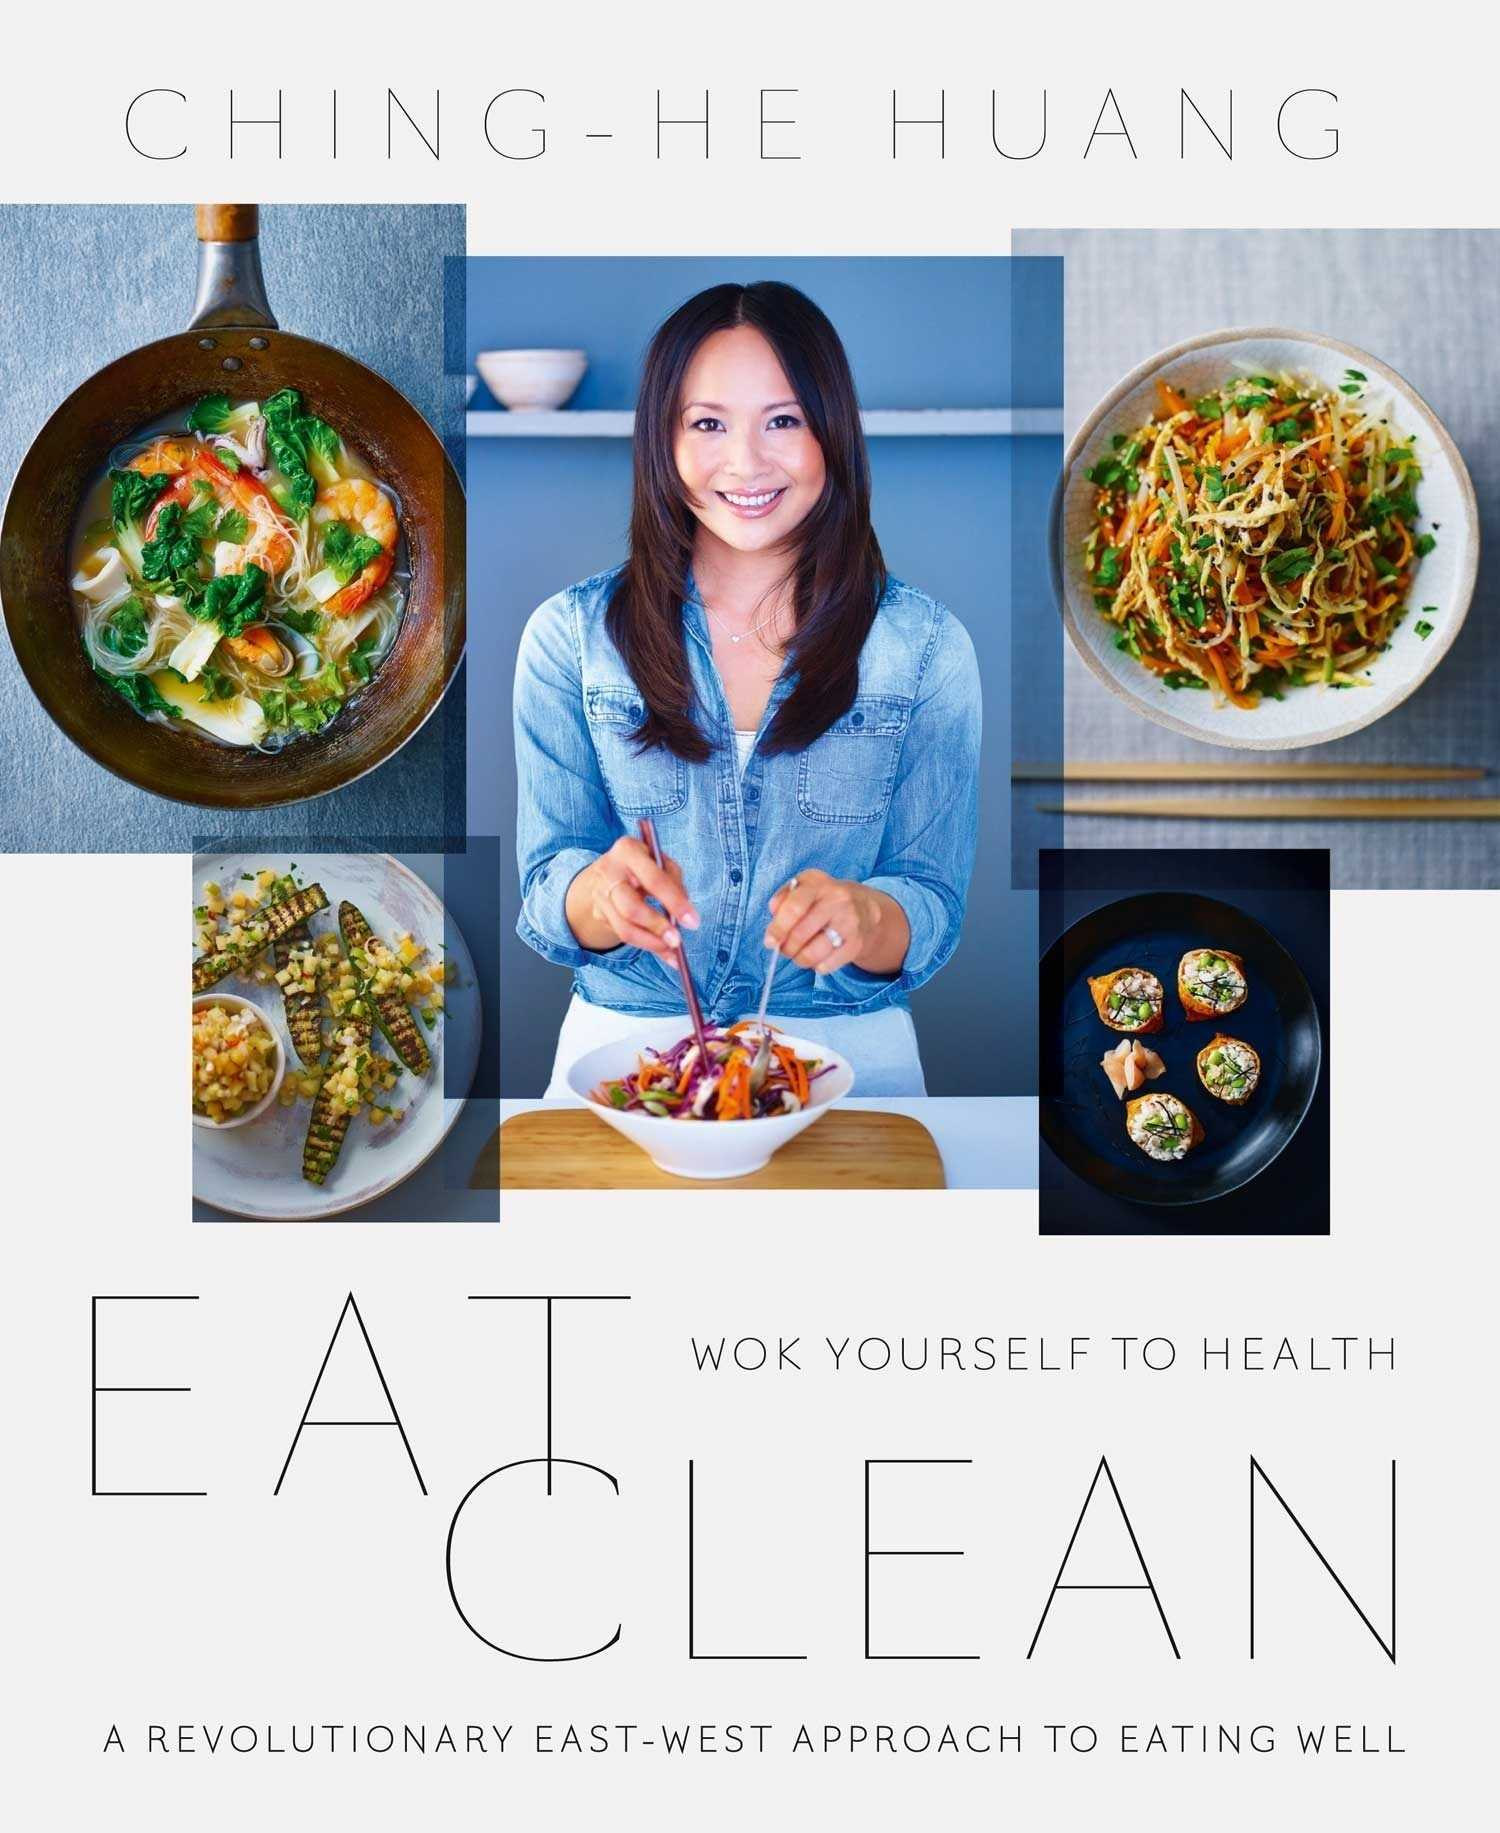 Eat Clean: Wok Yourself to Health by Ching-He Huang